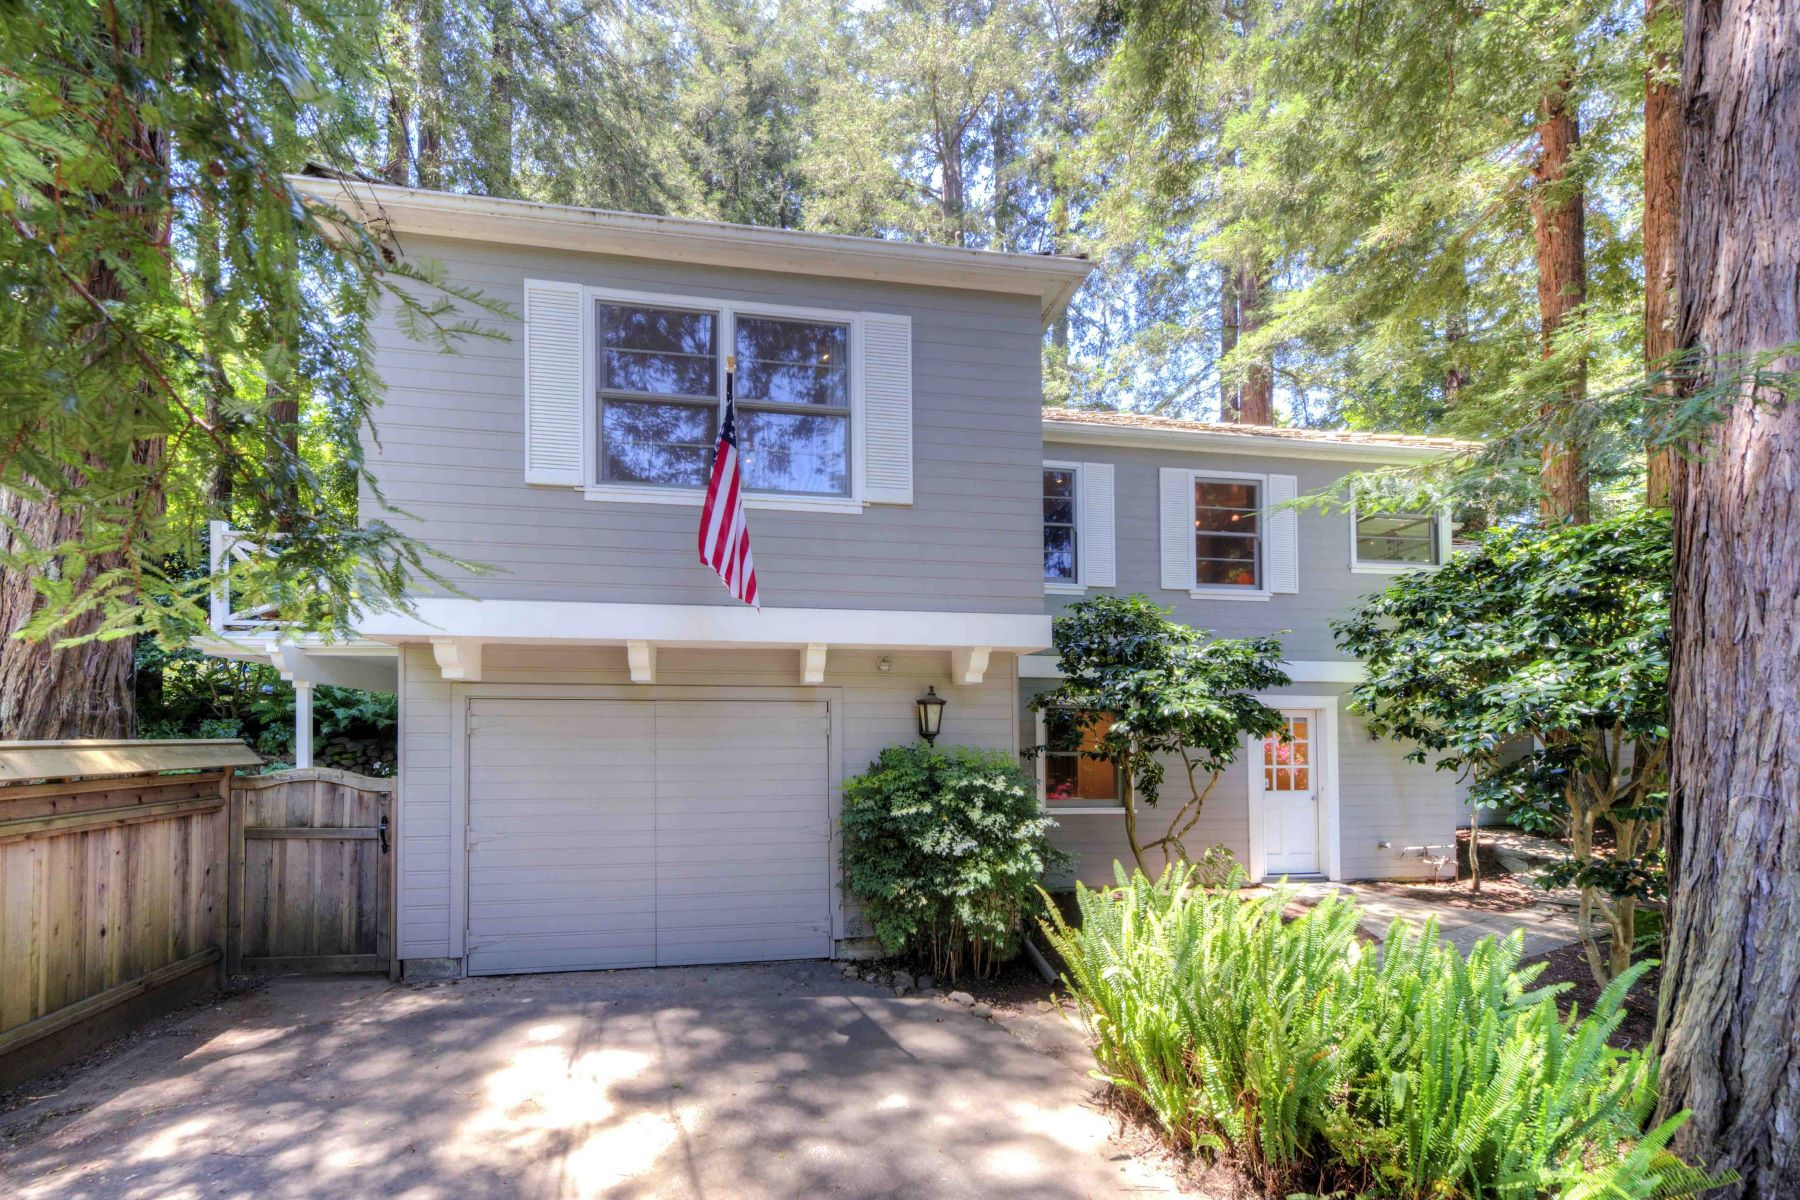 Single Family Home for Sale at Endearing Vintage Home - Minutes to Downtown Larkspur 11 Ardmore Road Larkspur, California, 94939 United States